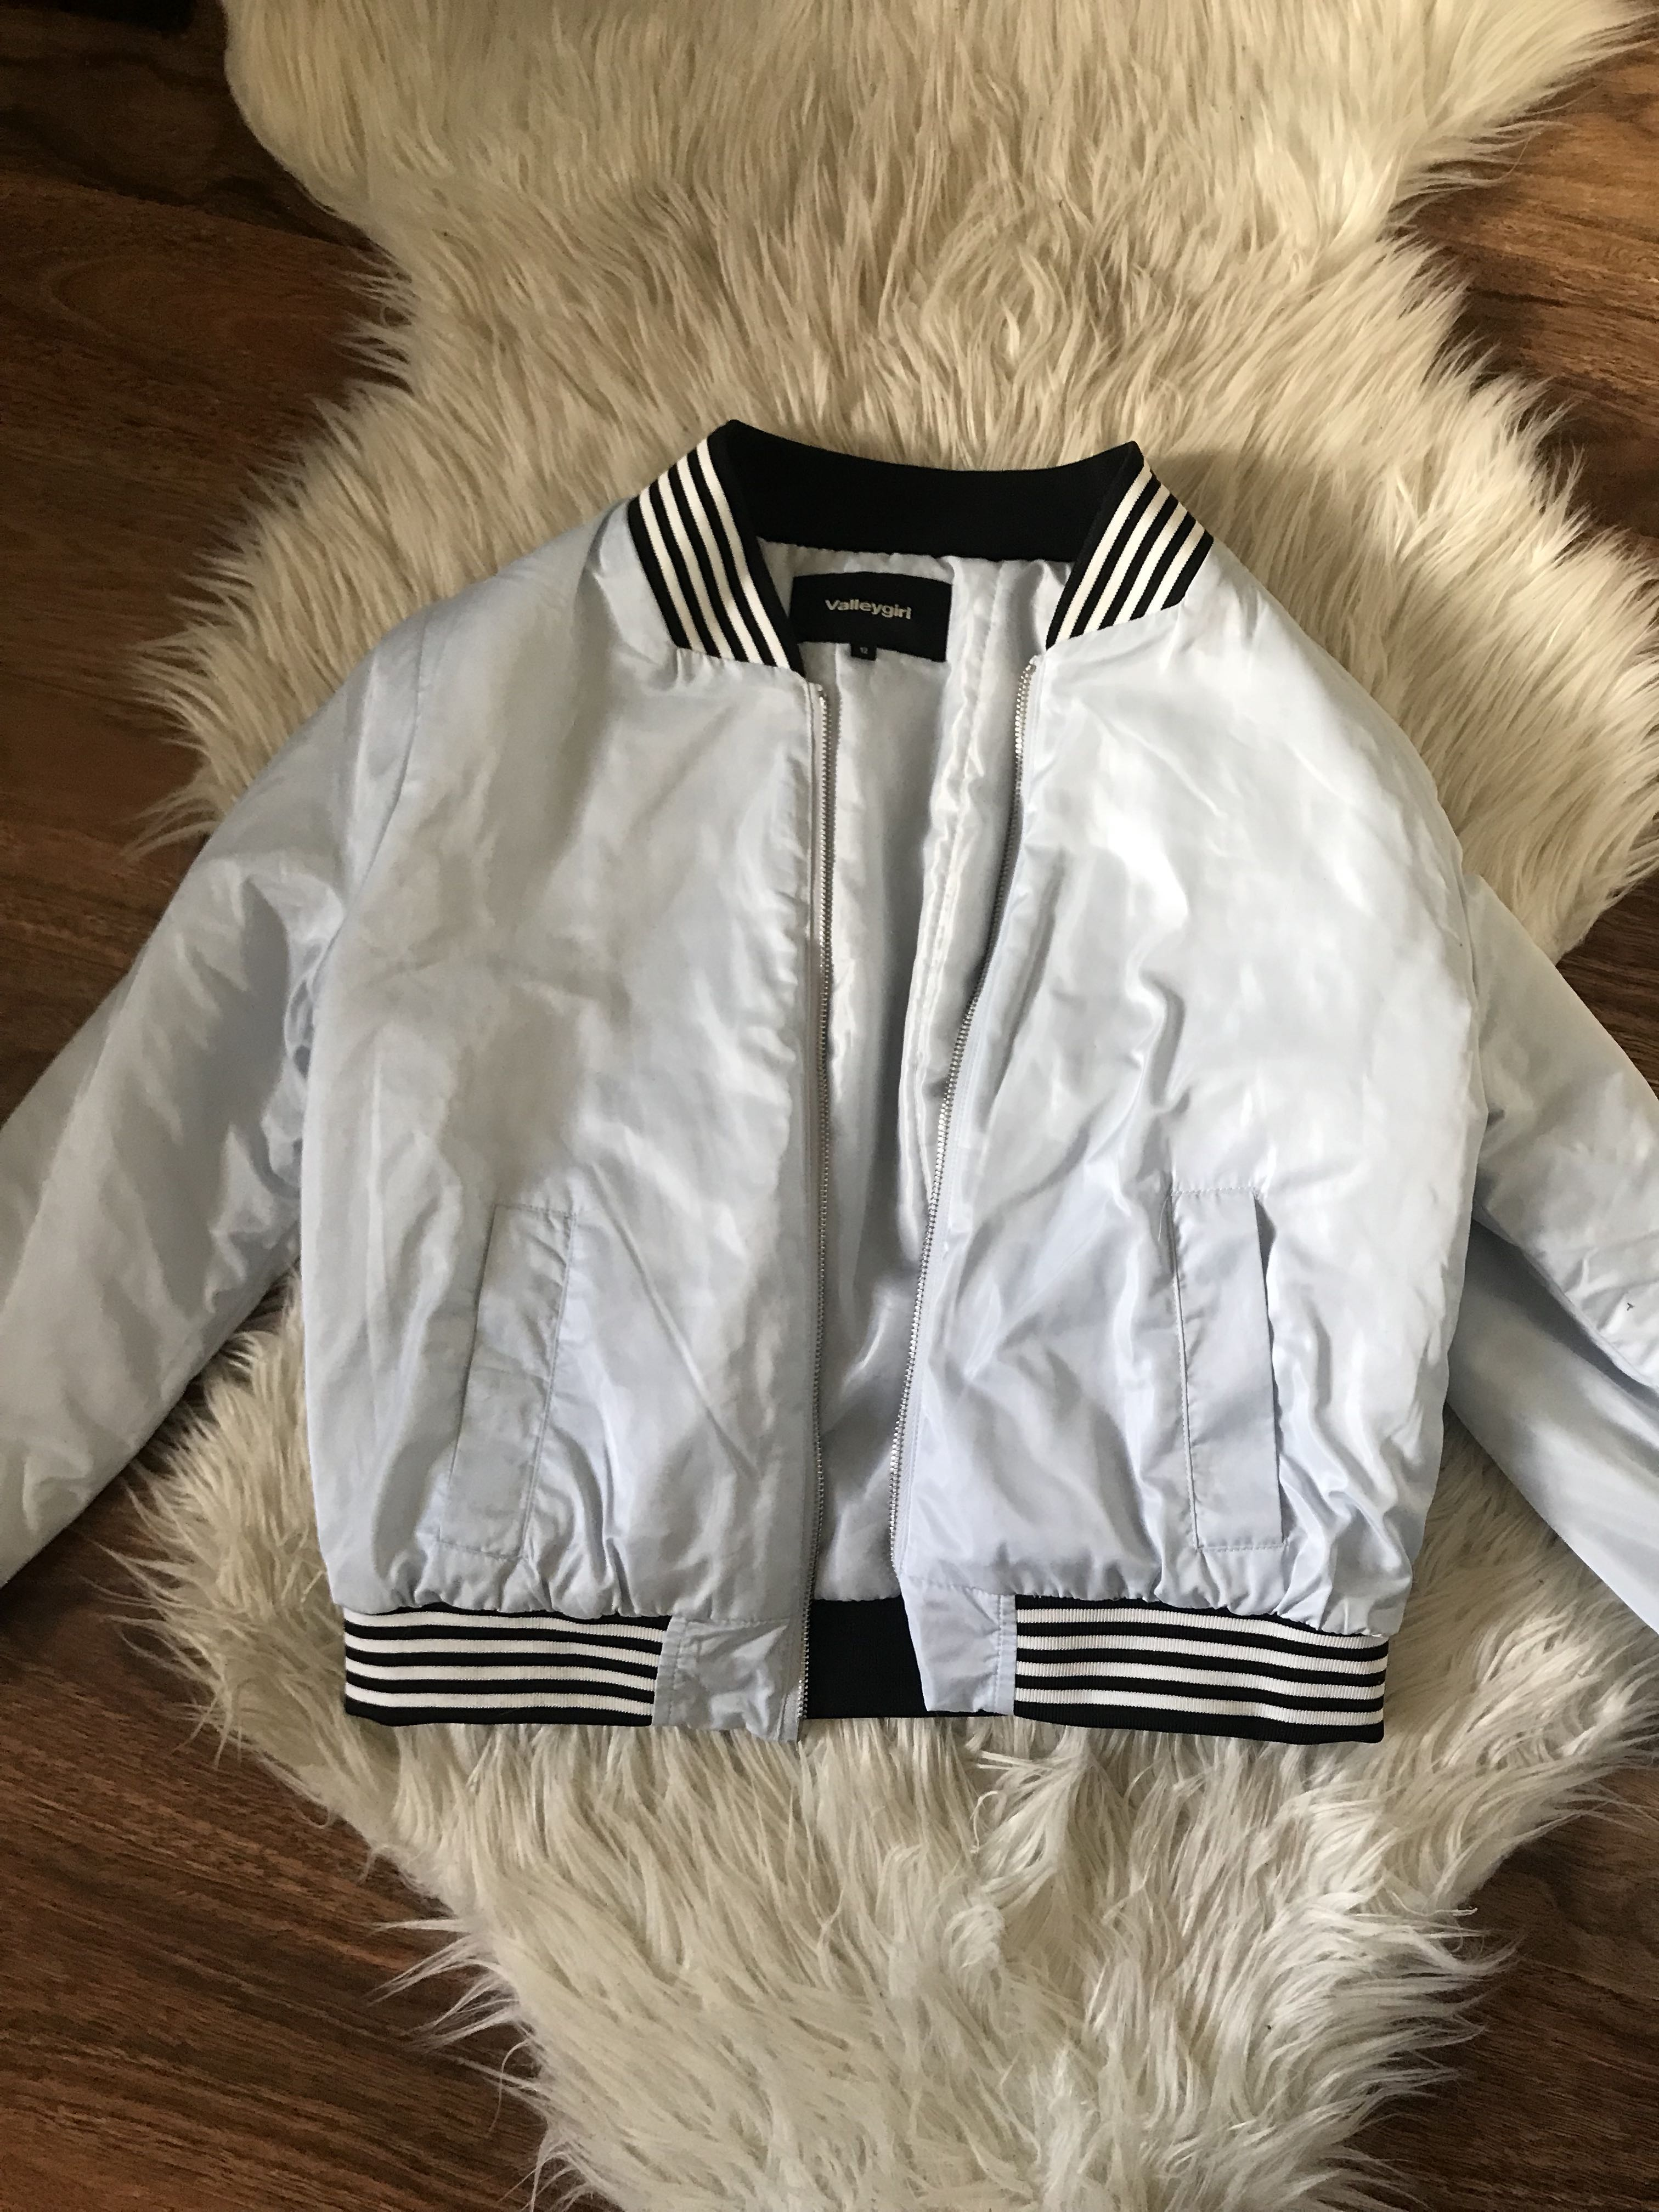 Cute baby Blue Valley girl boomer jacket